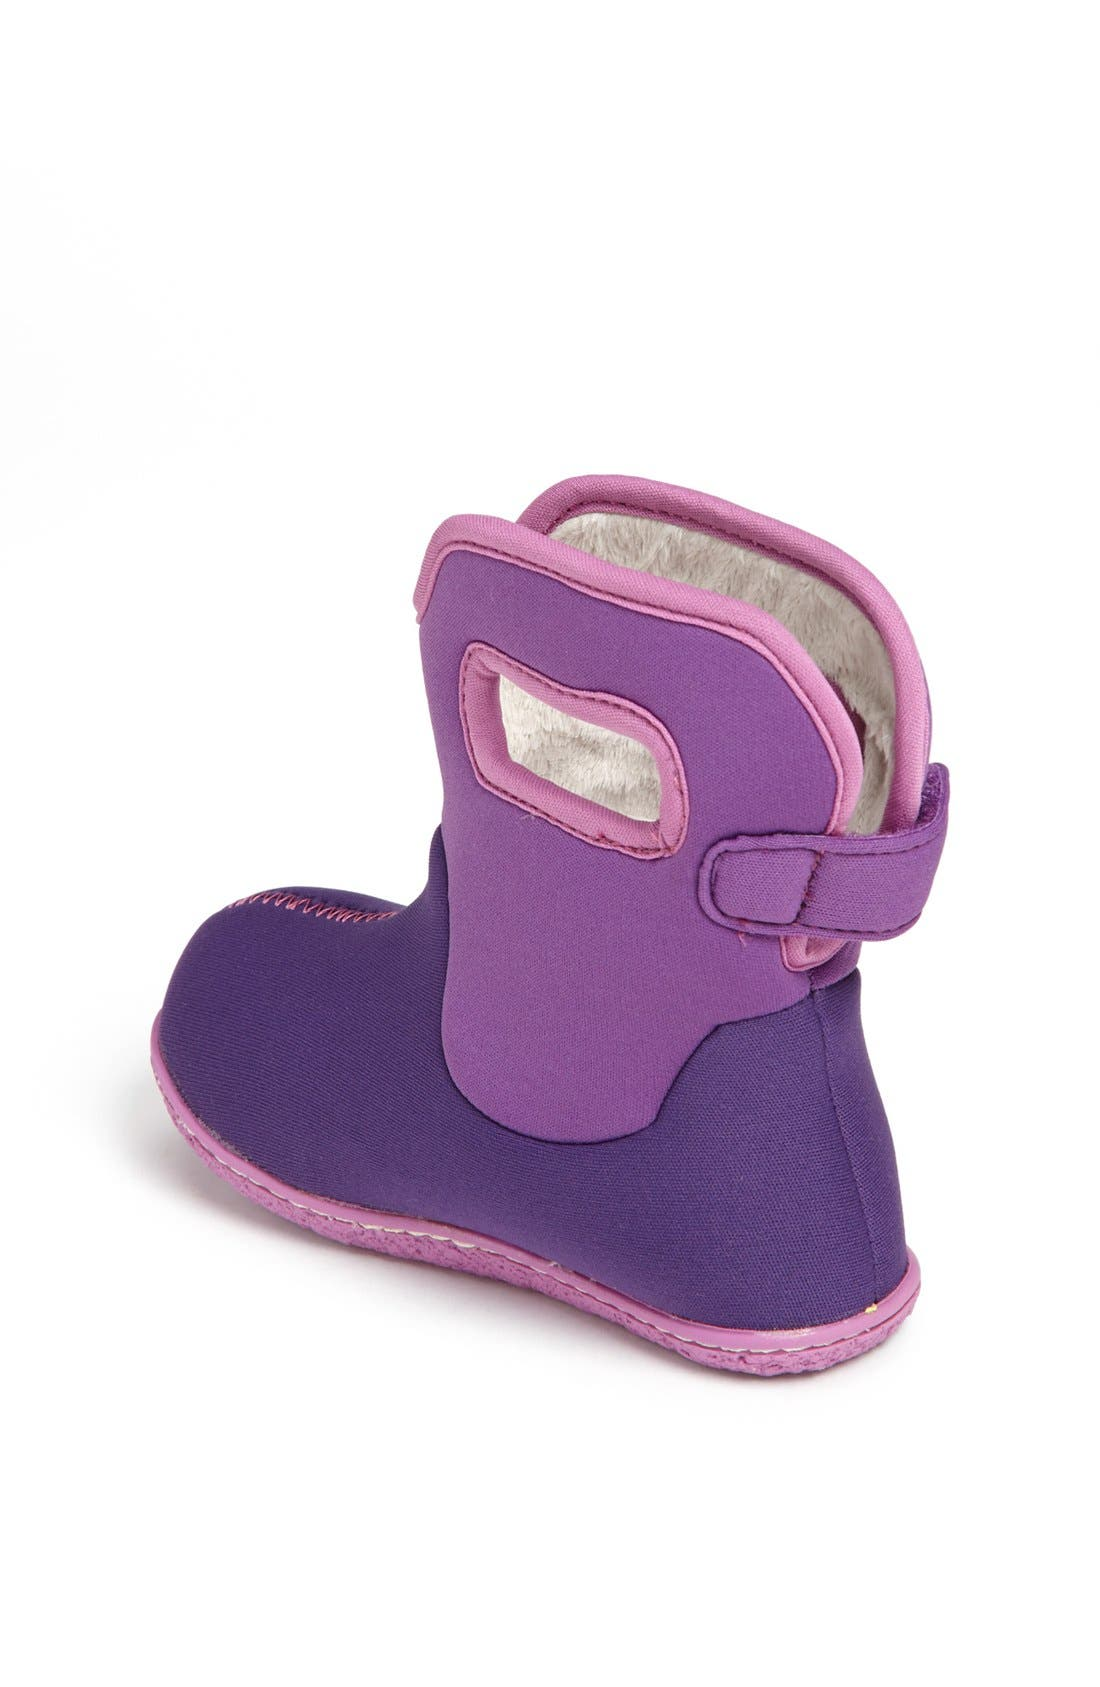 Alternate Image 2  - Bogs 'Baby Bogs' Waterproof Boot (Baby, Walker & Toddler)